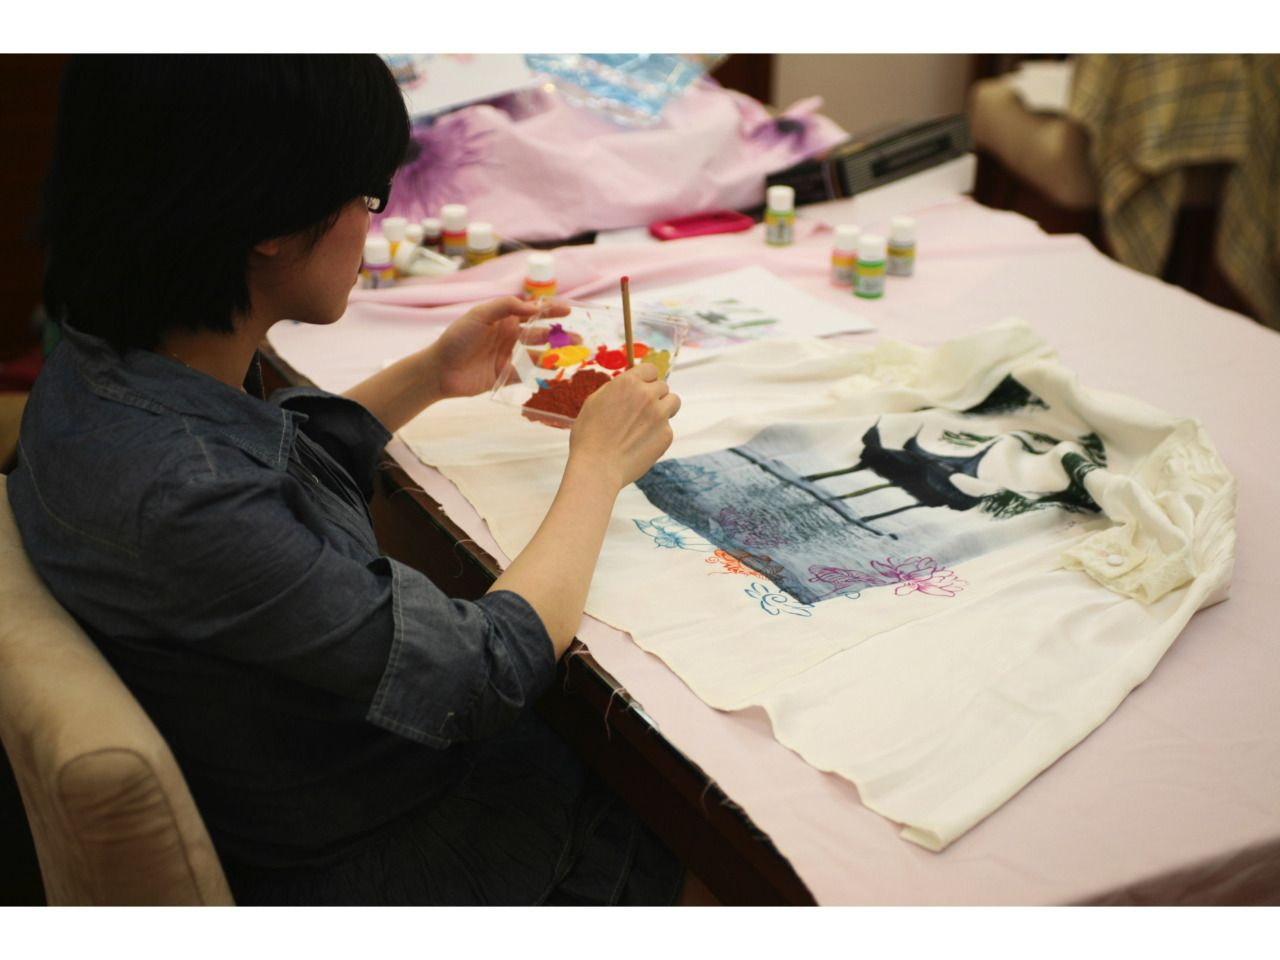 Story 20.....  It was the very beginning of Adventuryx history. I met some great artists and fashion lovers in Shanghai between 2010 to 2012.   #fashion #style #adventuryx #taletovich #fashionista #style #jeansbrand #shanghai #artists  #silk #photography